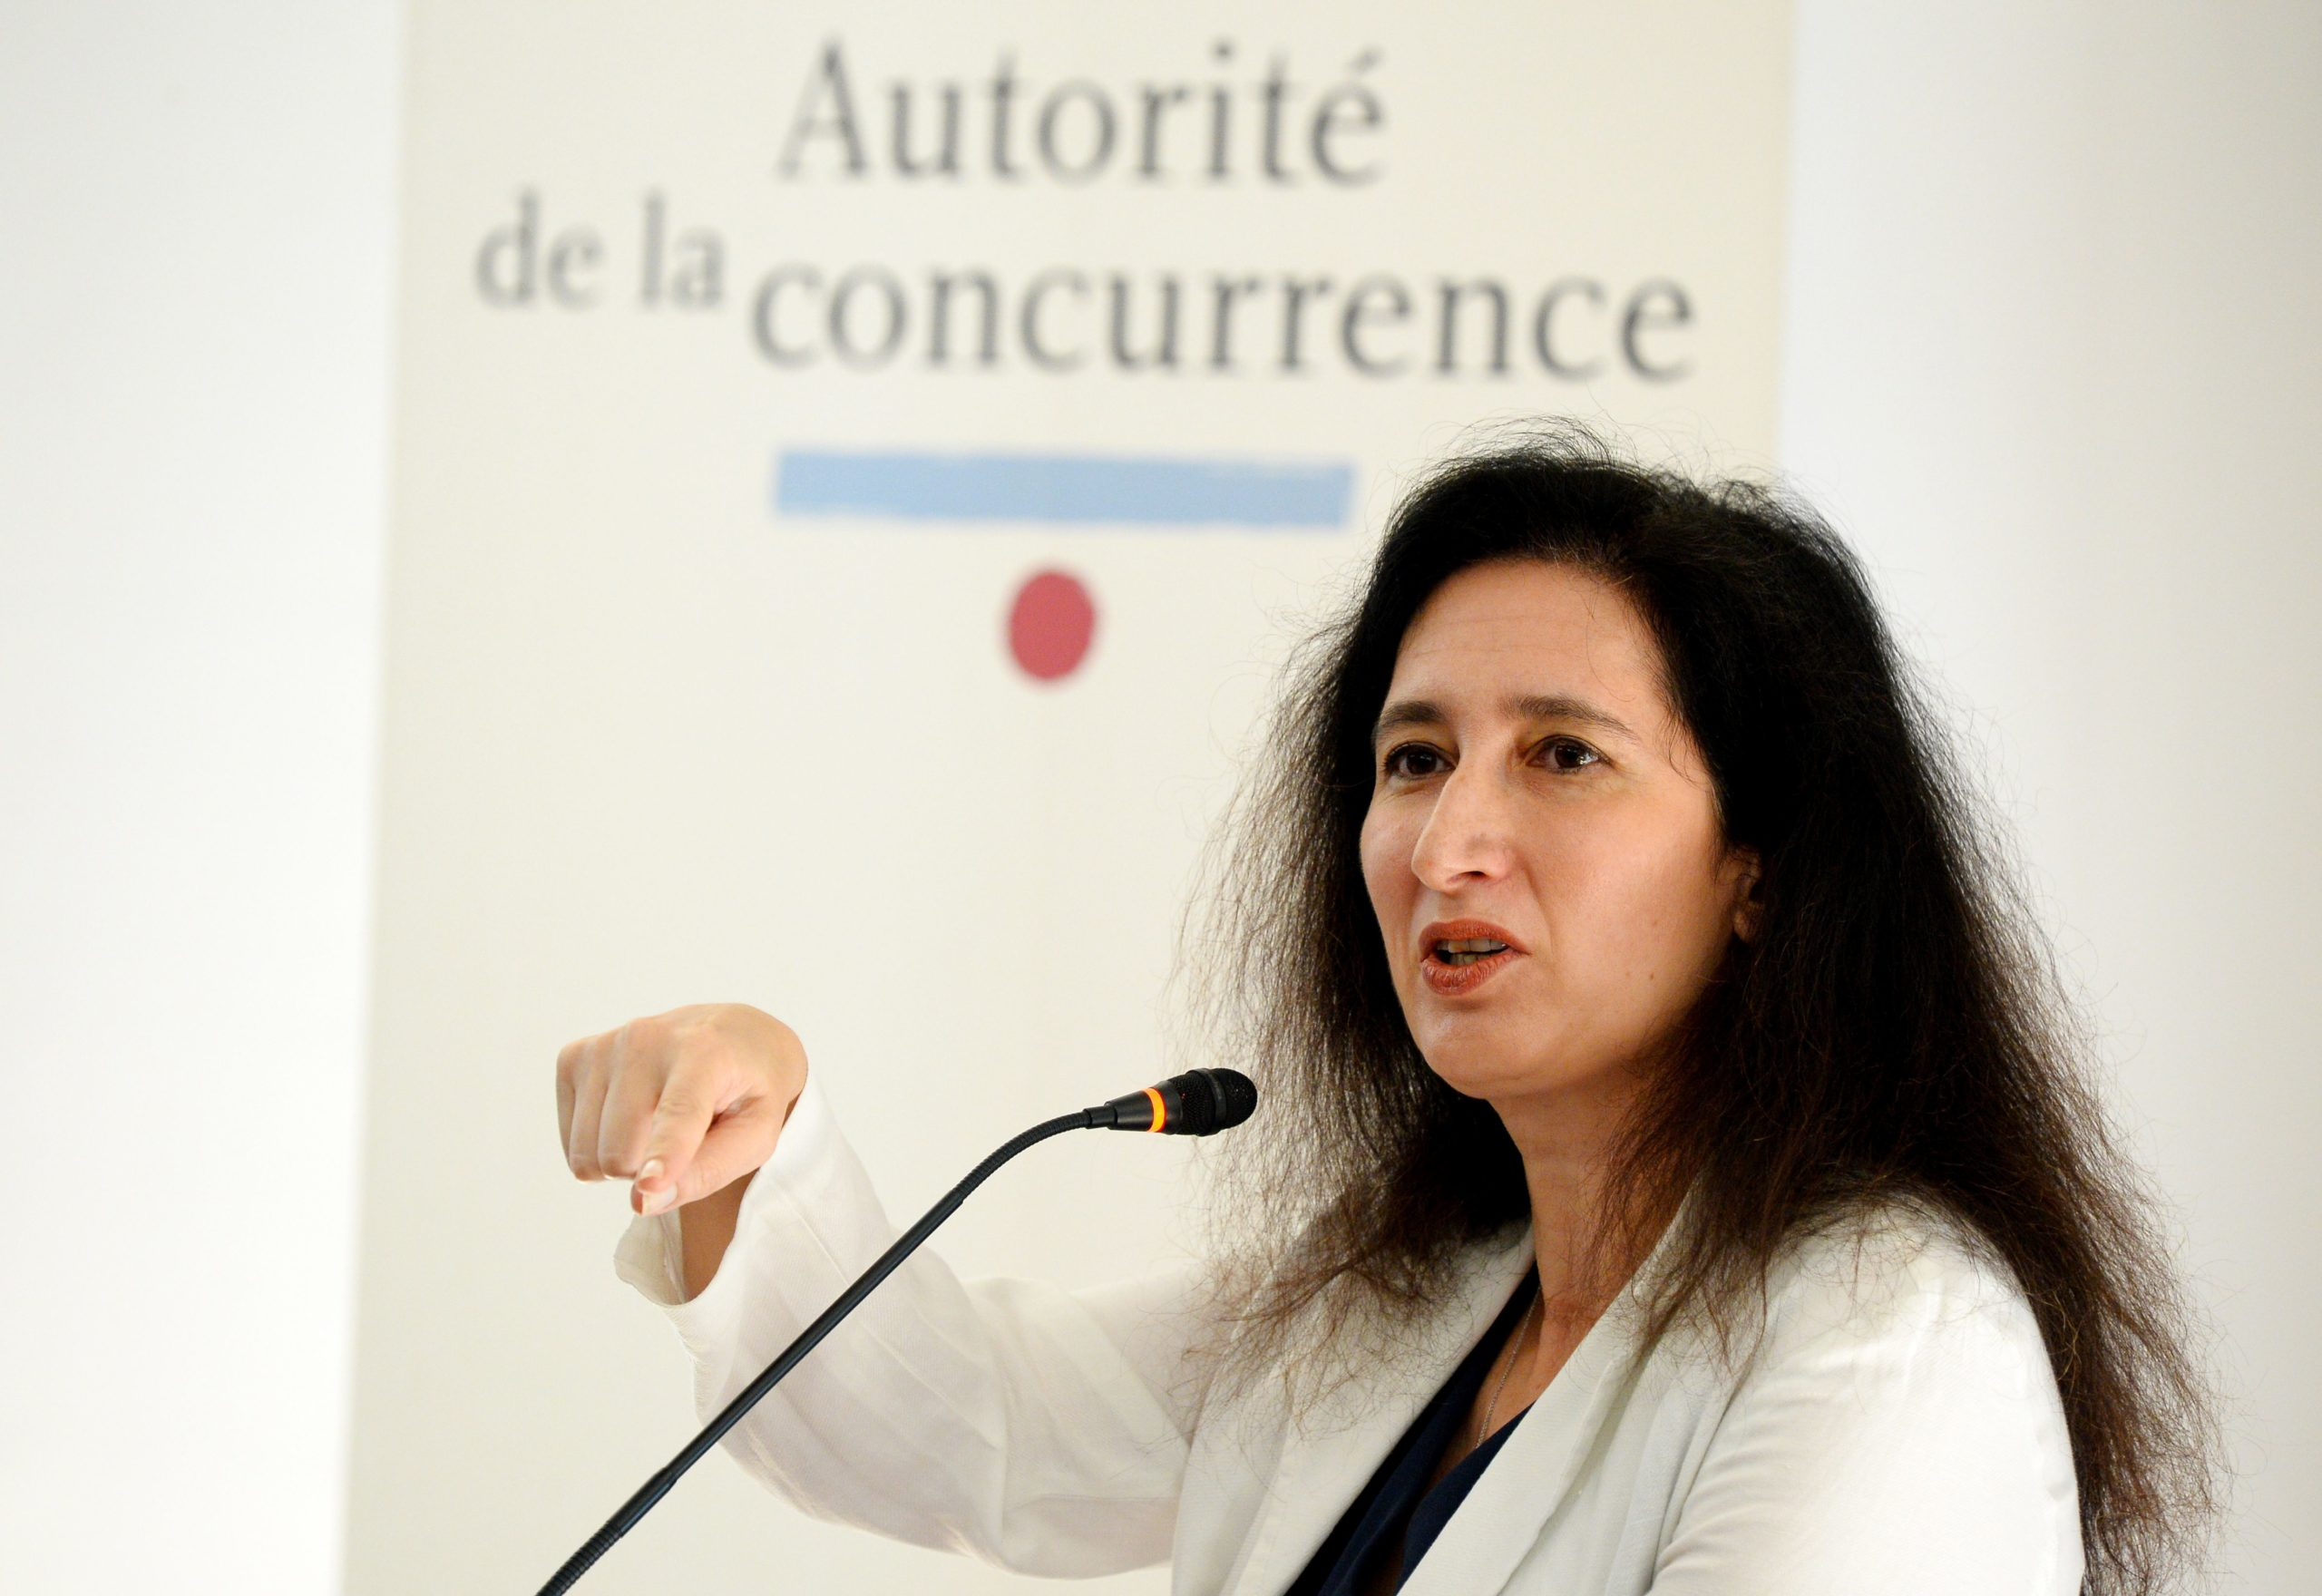 Head of the France's Competition Authority (Autorite de la Concurrence) Isabelle de Silva speaks during a press conference. (Photo by ERIC PIERMONT/AFP via Getty Images)